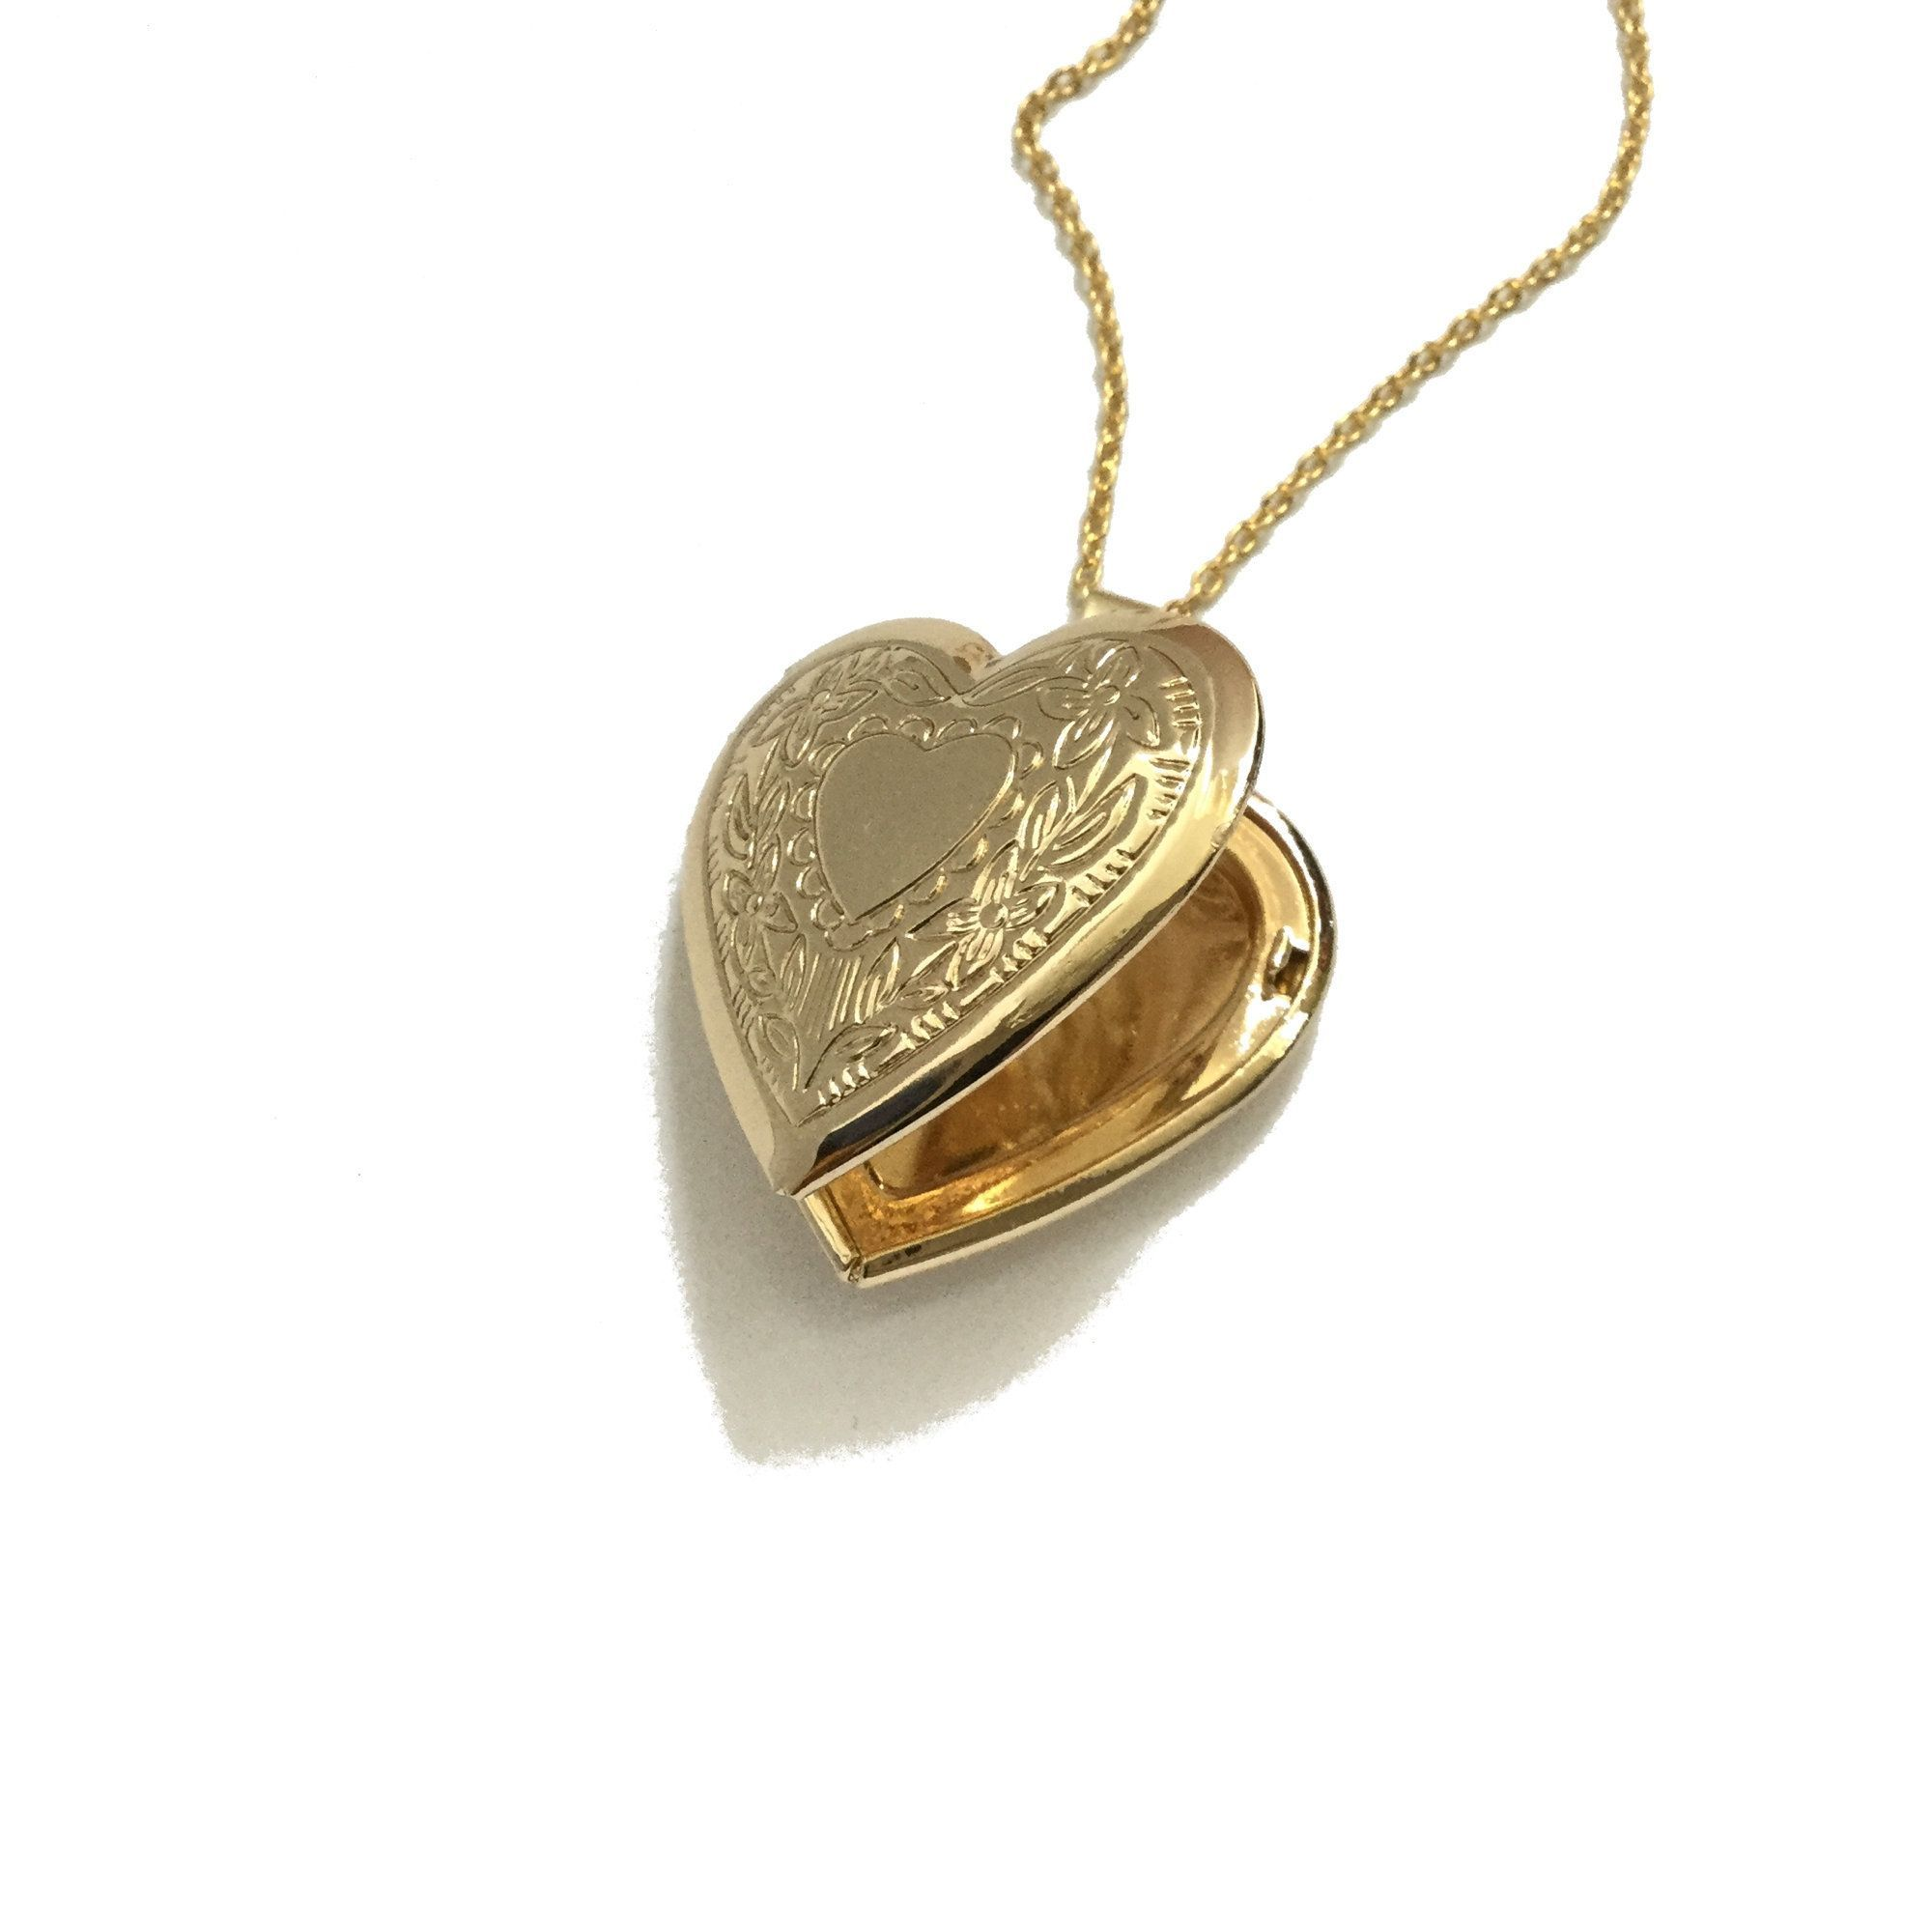 Heart Locket Necklace, floral locket, romantic love locket, Mother's day gift locket, girlfriend gift, golden brass locket, golden locket -   - #brass #Day #diyjewelryeasy #diyjewelrymakingkit #floral #Gift #girlfriend #goldchainnecklace #goldnamenecklace #goldnecklace #goldnecklaceinitial #goldnecklacename #goldnecklacenamemexican #goldnecklacenamepersonalizedjewelry #goldnecklacenamestyle #golden #goldennecklake #heart #jewelrydiyeasy #jewelrydiyeasyhandmade #jewelrydiyeasyhowtomake #jewelryd